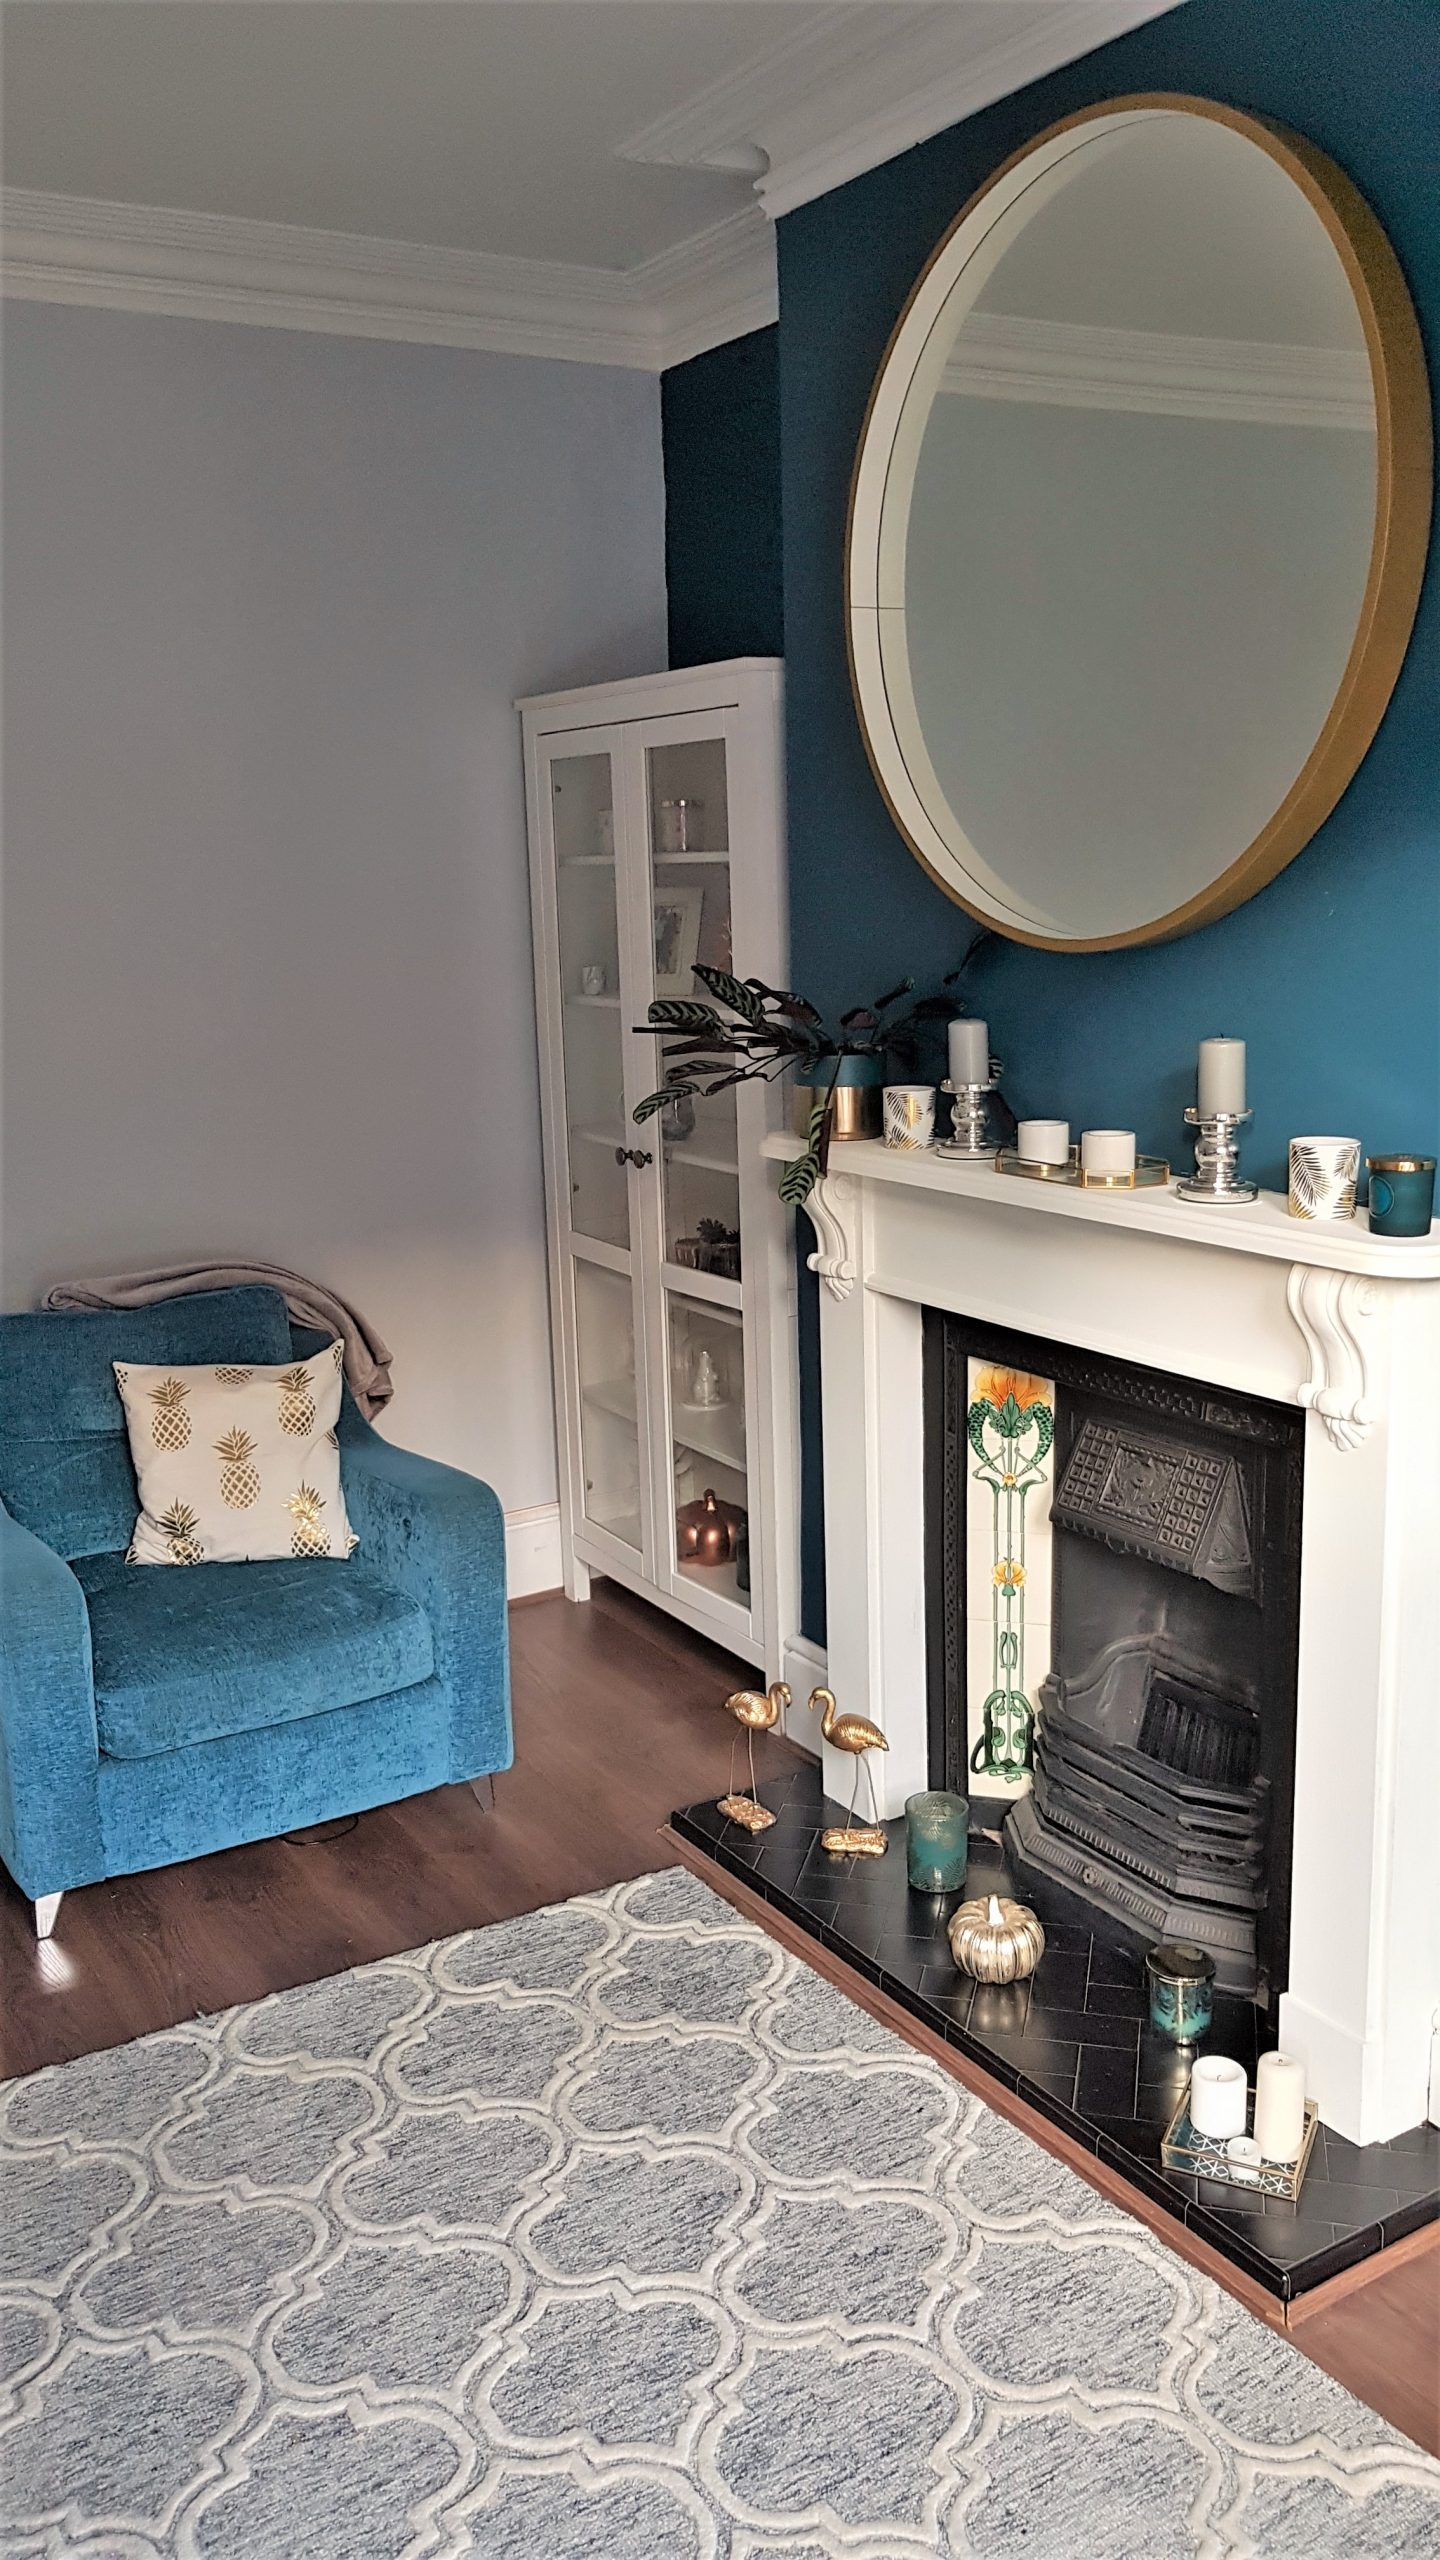 Top Tips for a Cosy Home in Winter *